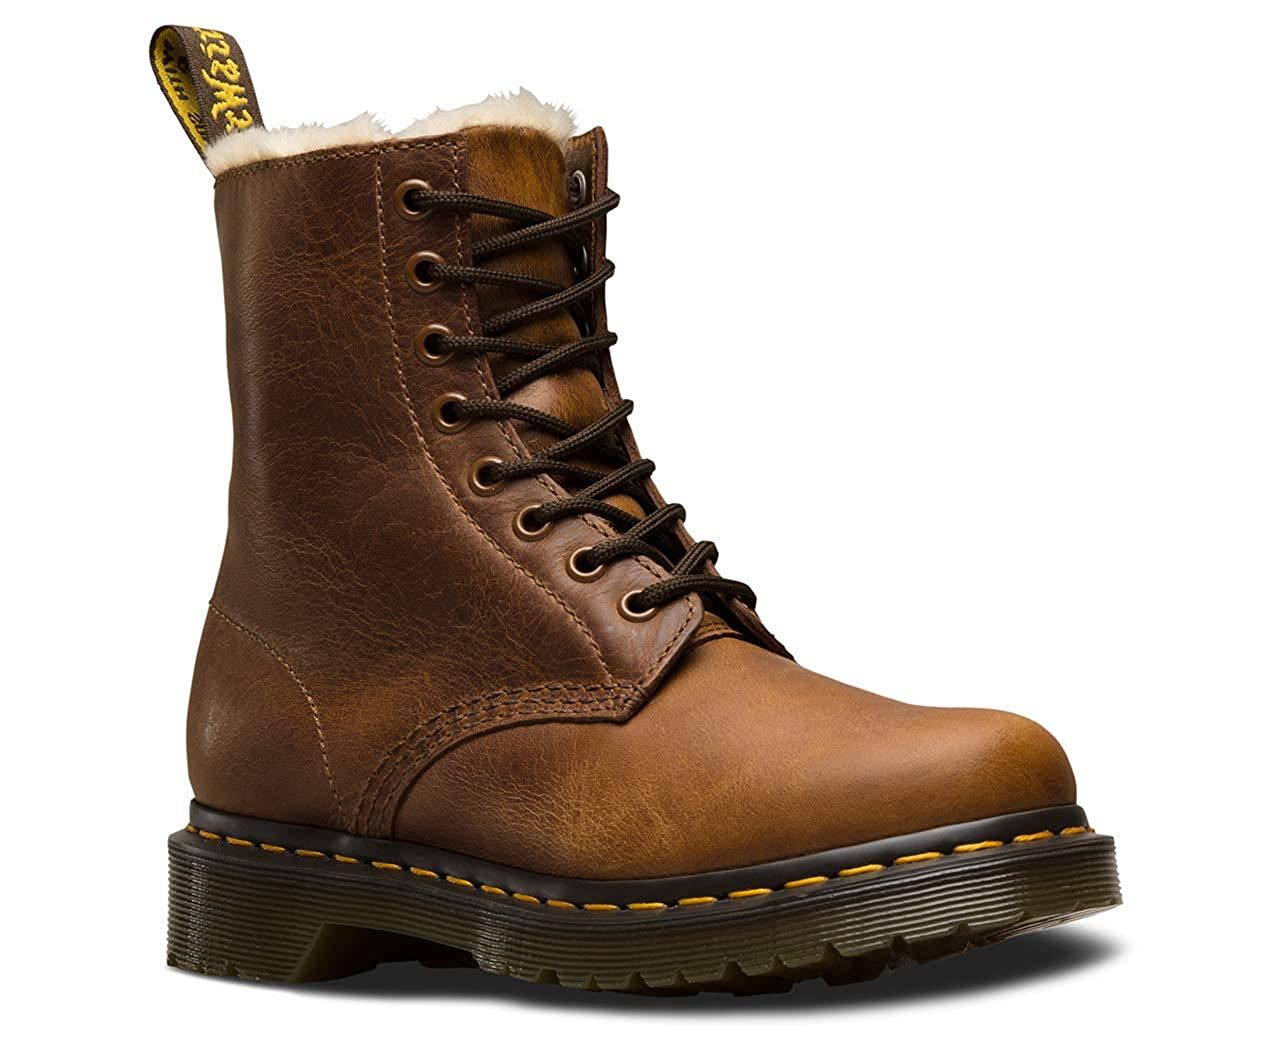 Dr. Martens 1460 Serena 8 Eye Boot Butterscotch Orleans